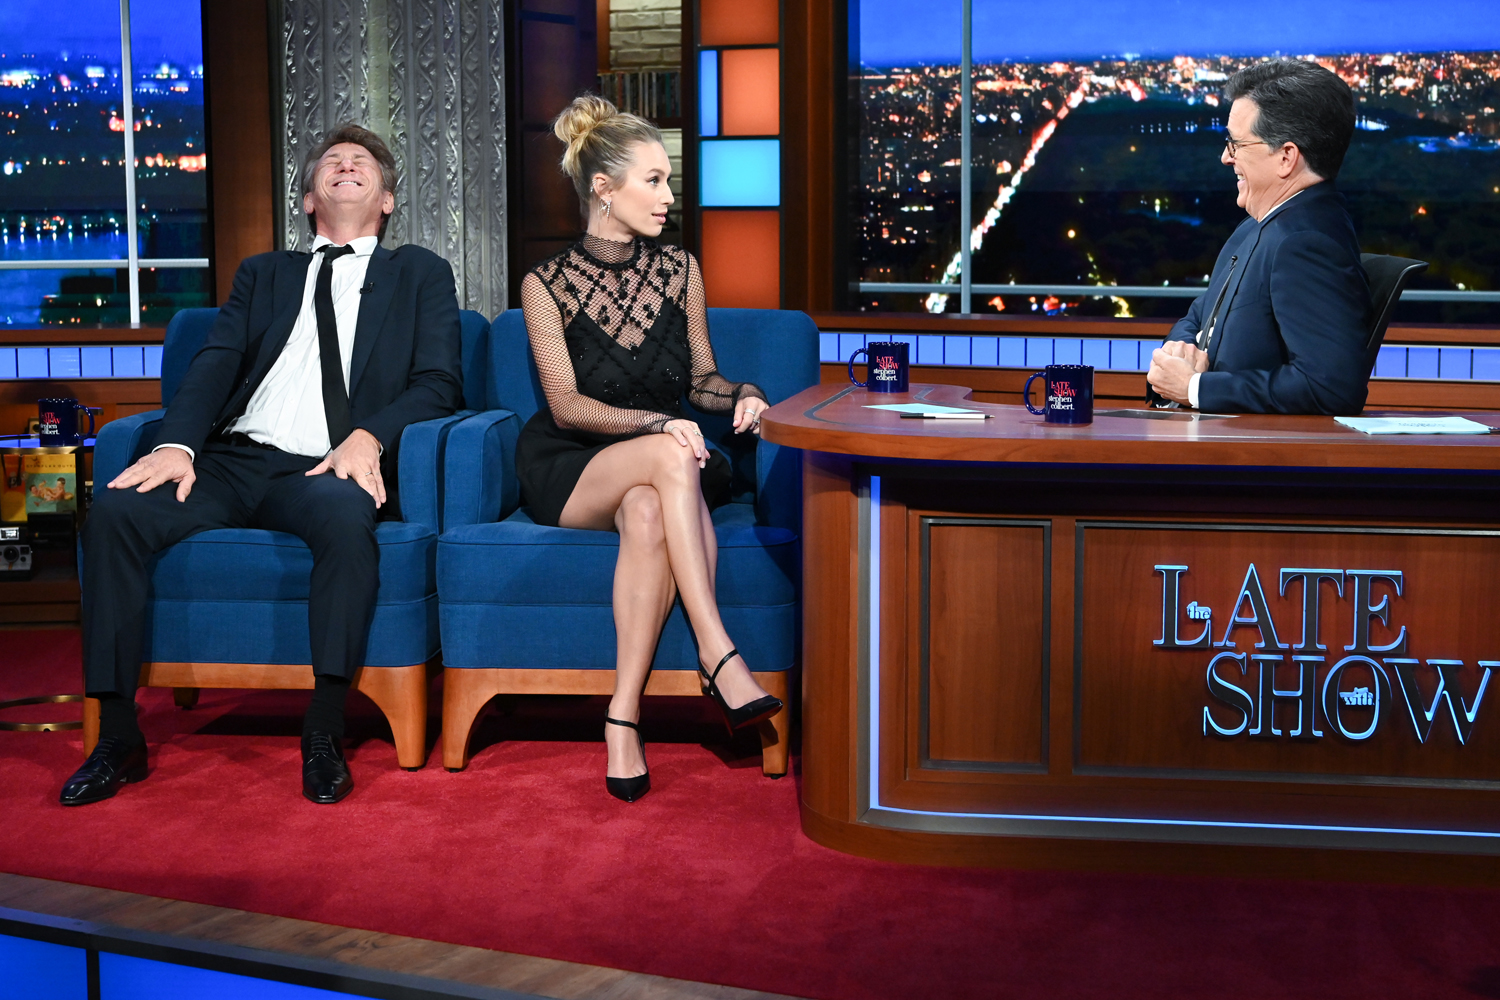 The Late Show with Stephen Colbert and guest Sean Penn and Dylan Penn